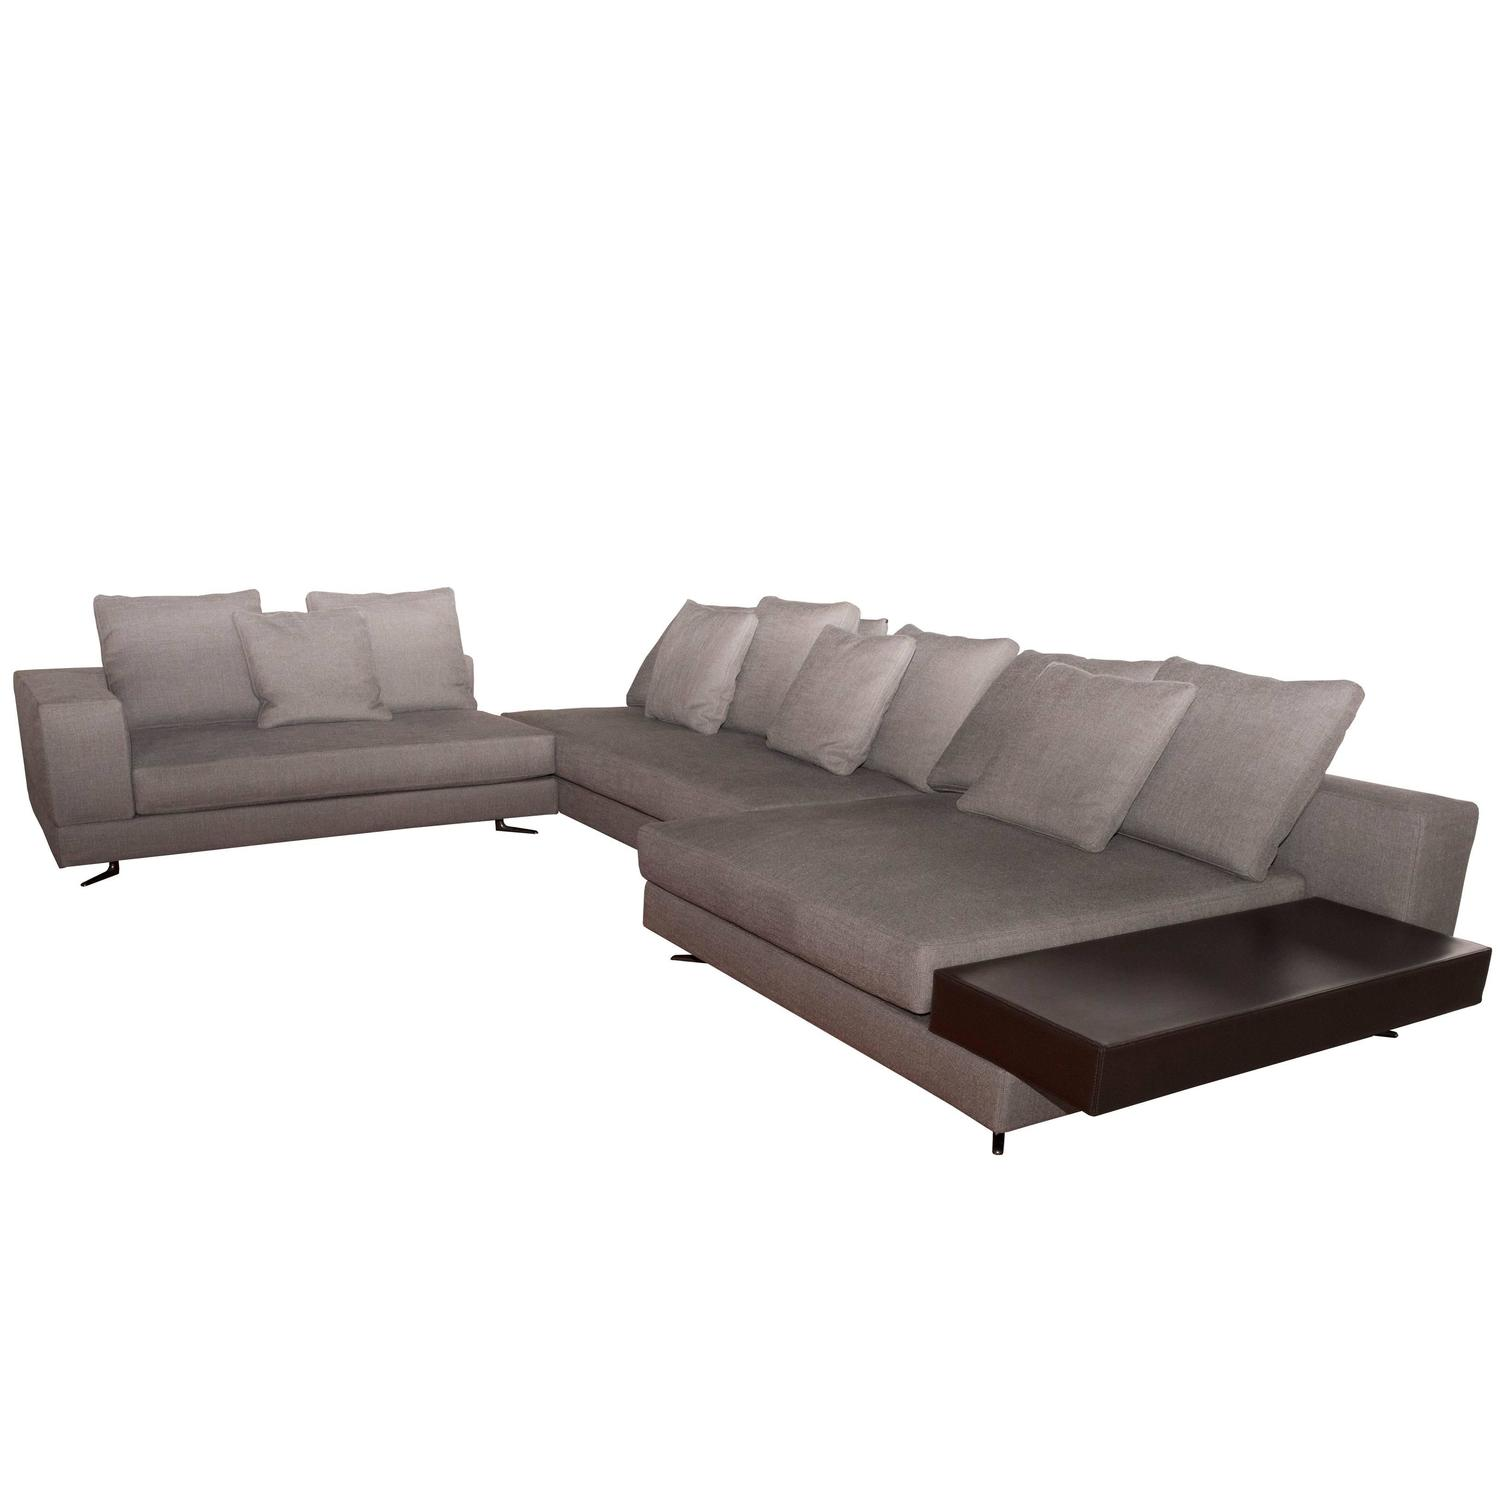 Minotti White Sectional Sofa At 1stdibs